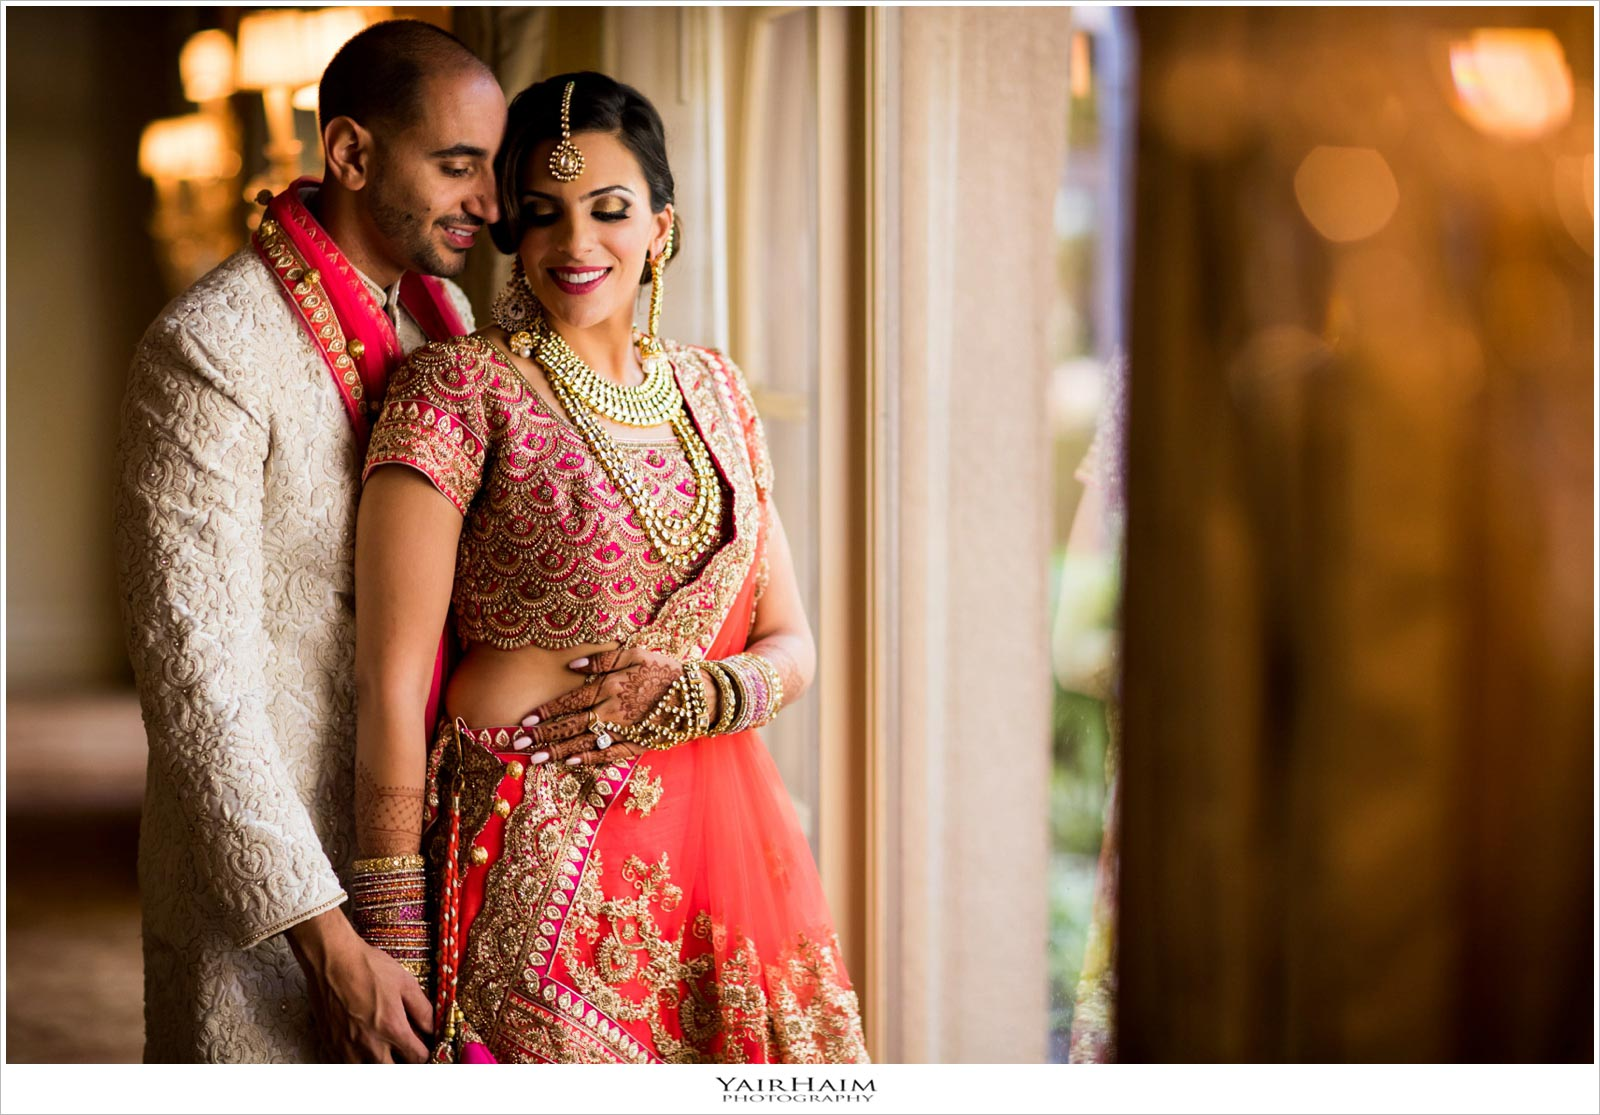 Indian wedding photos Langham Pasadena  Yair Haim Photography